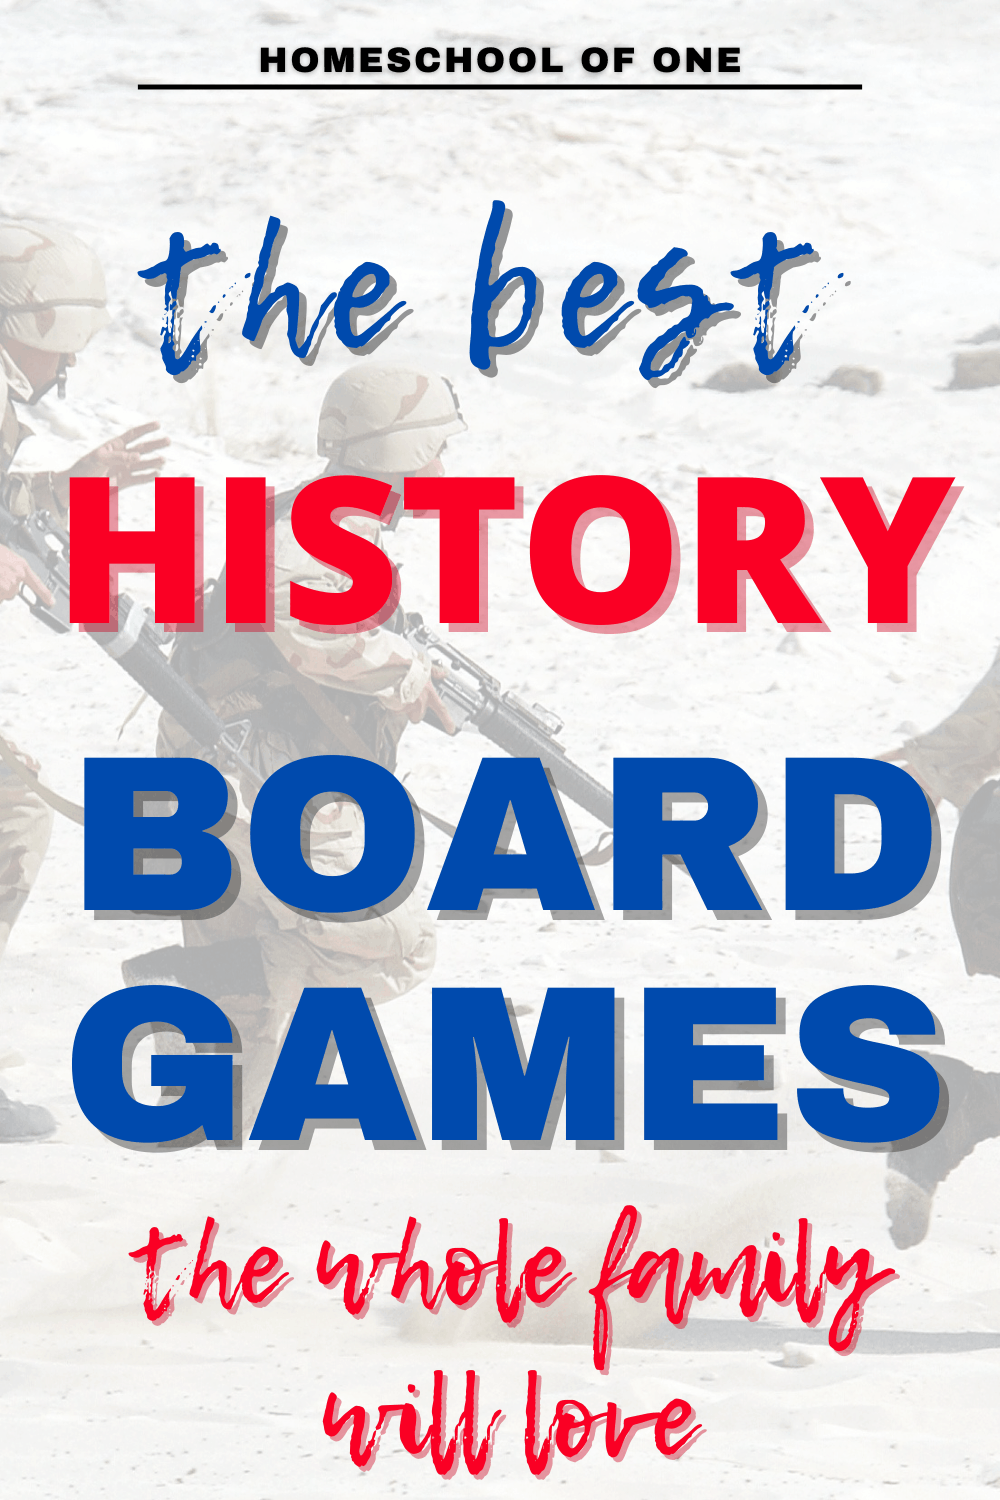 The best history board games you can play as a family. Perfect for homeschooling #history #boardgames #educationalboardgames